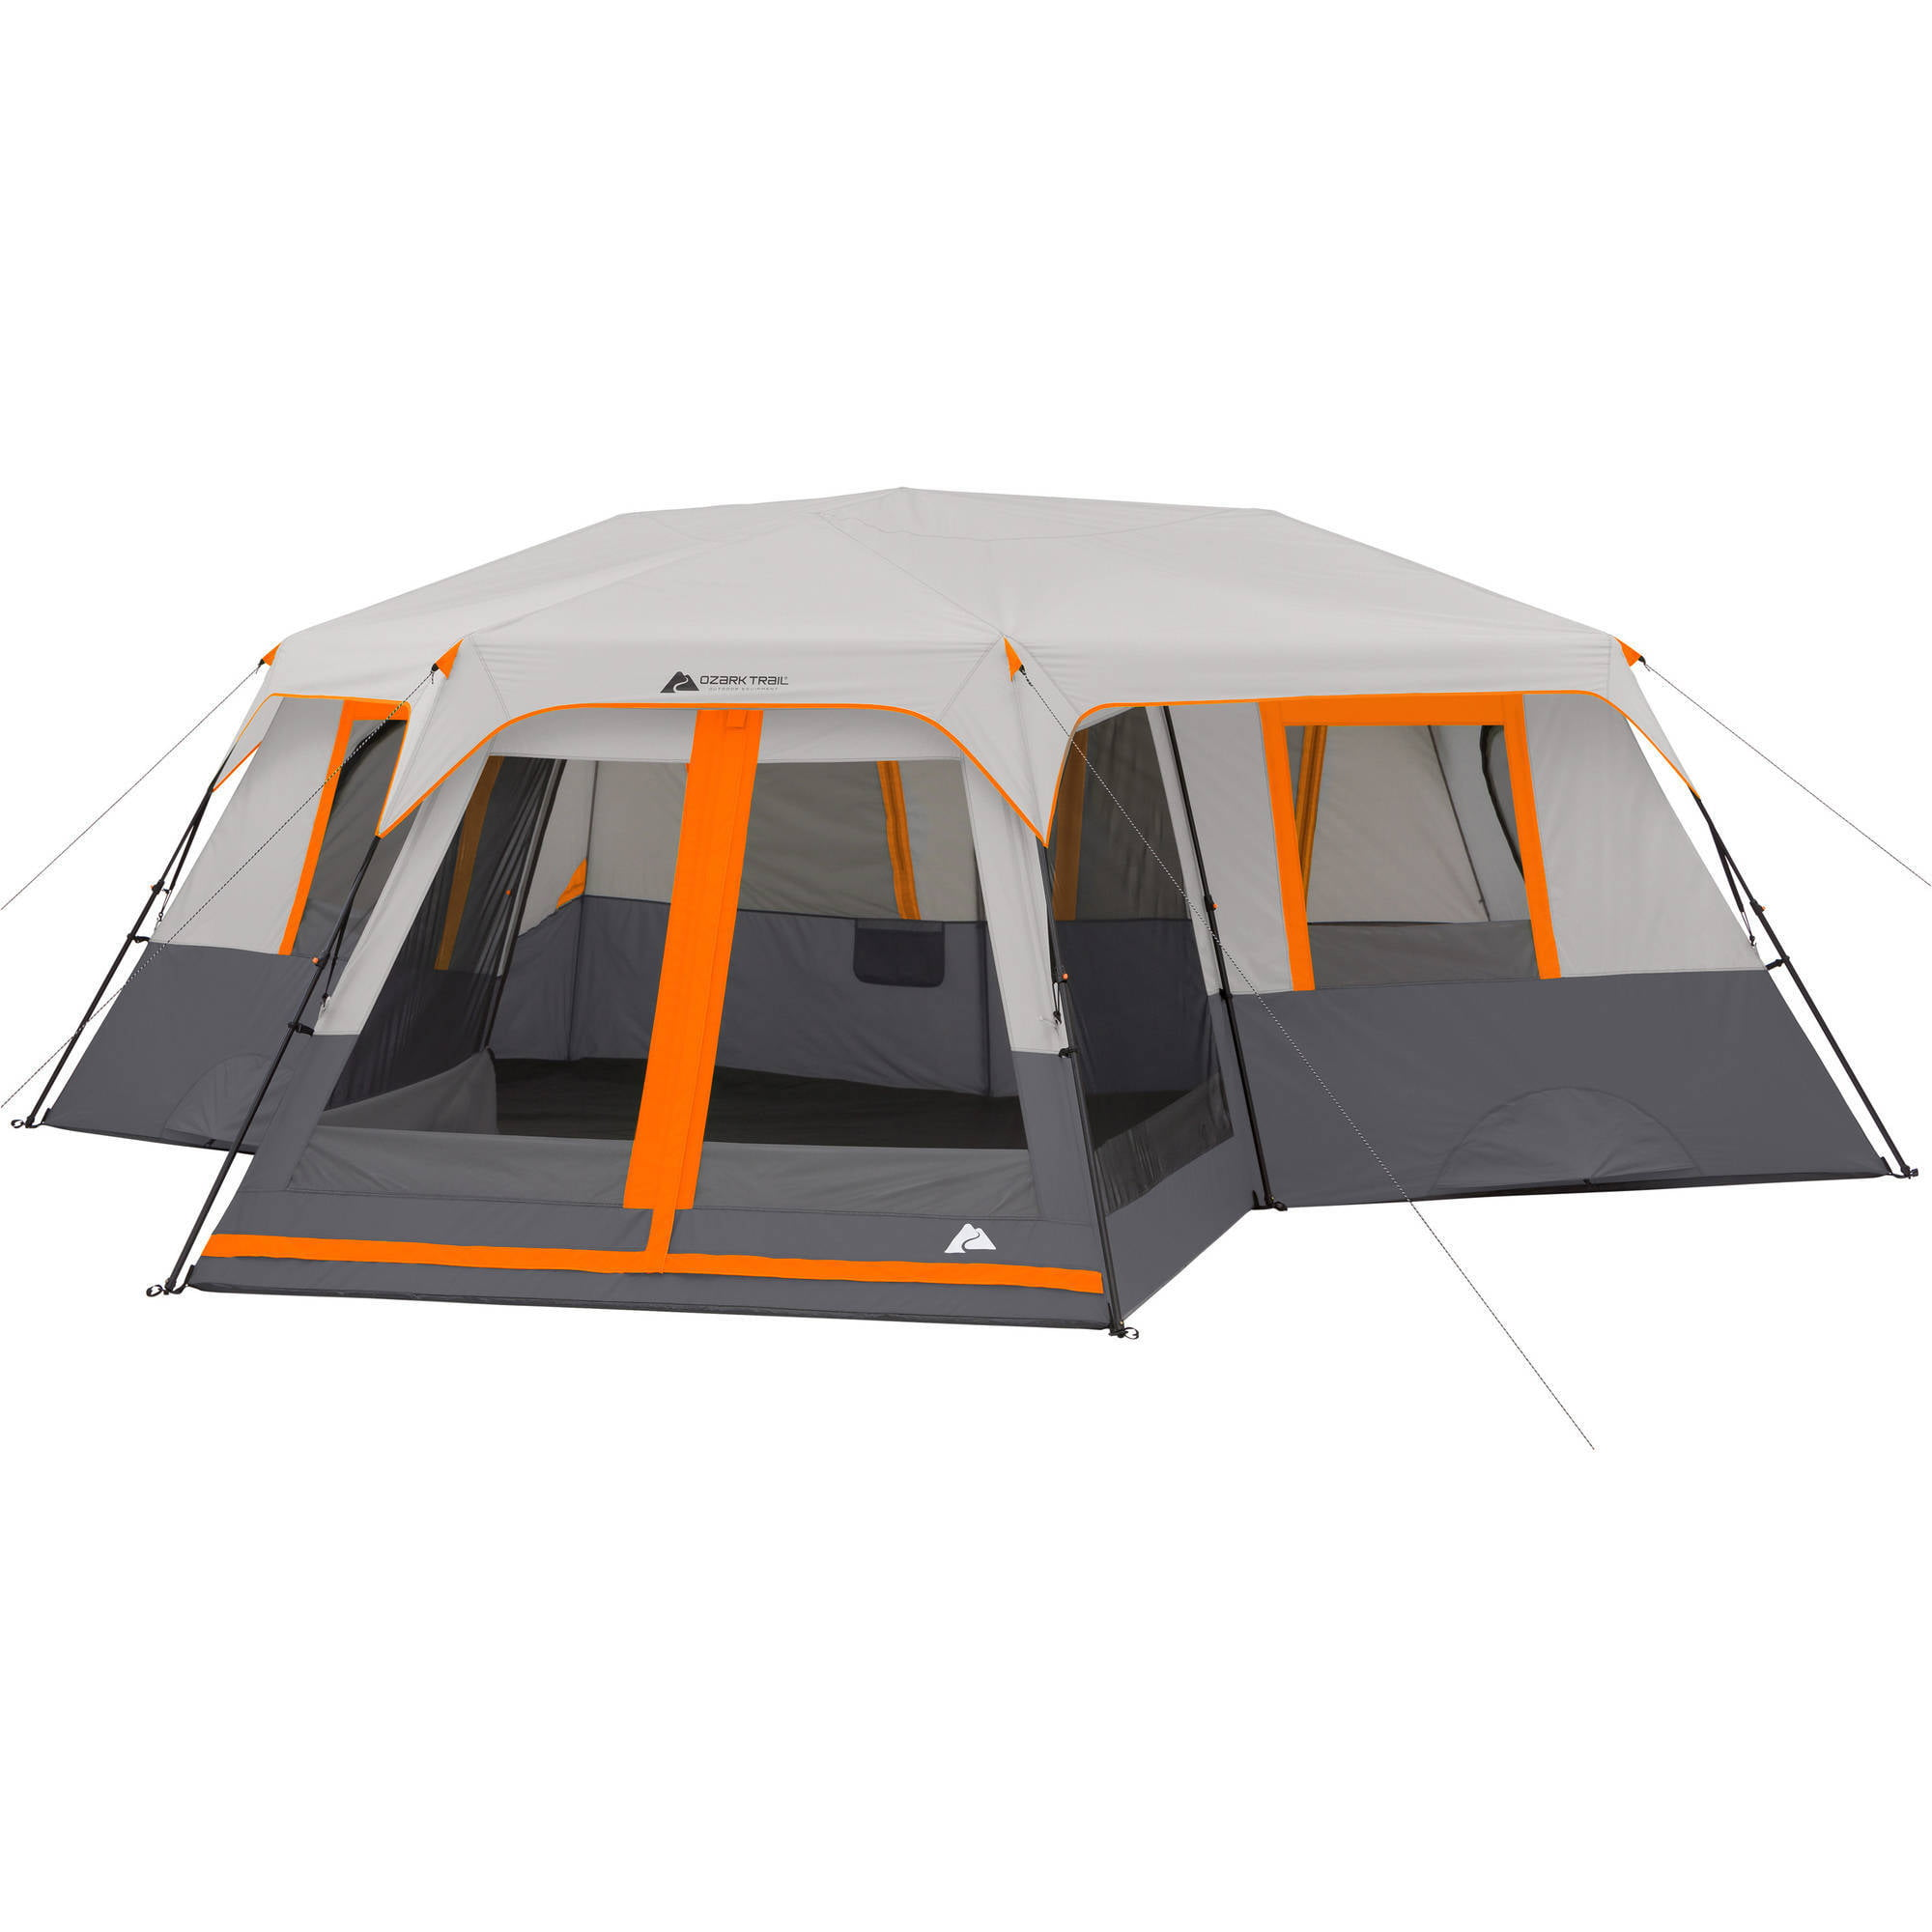 Ozark Trail 12-Person 3-Room Instant Cabin Tent with Screen Room - Walmart.com  sc 1 st  Walmart & Ozark Trail 12-Person 3-Room Instant Cabin Tent with Screen Room ...